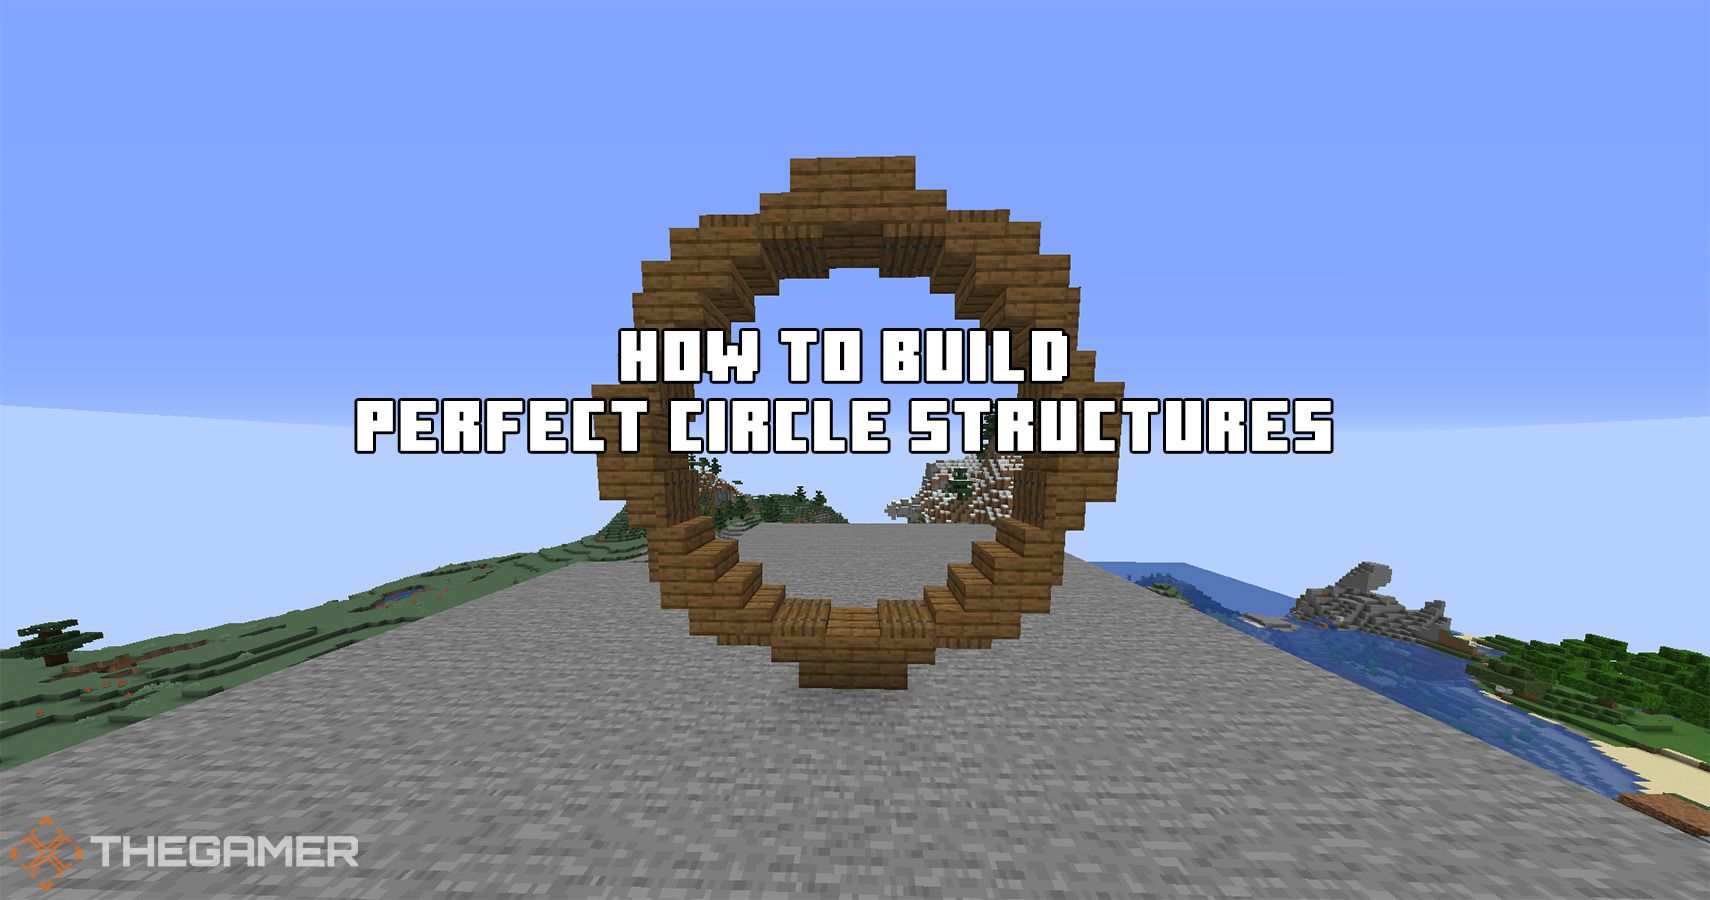 Minecraft: How To Build Perfect Circle Structures